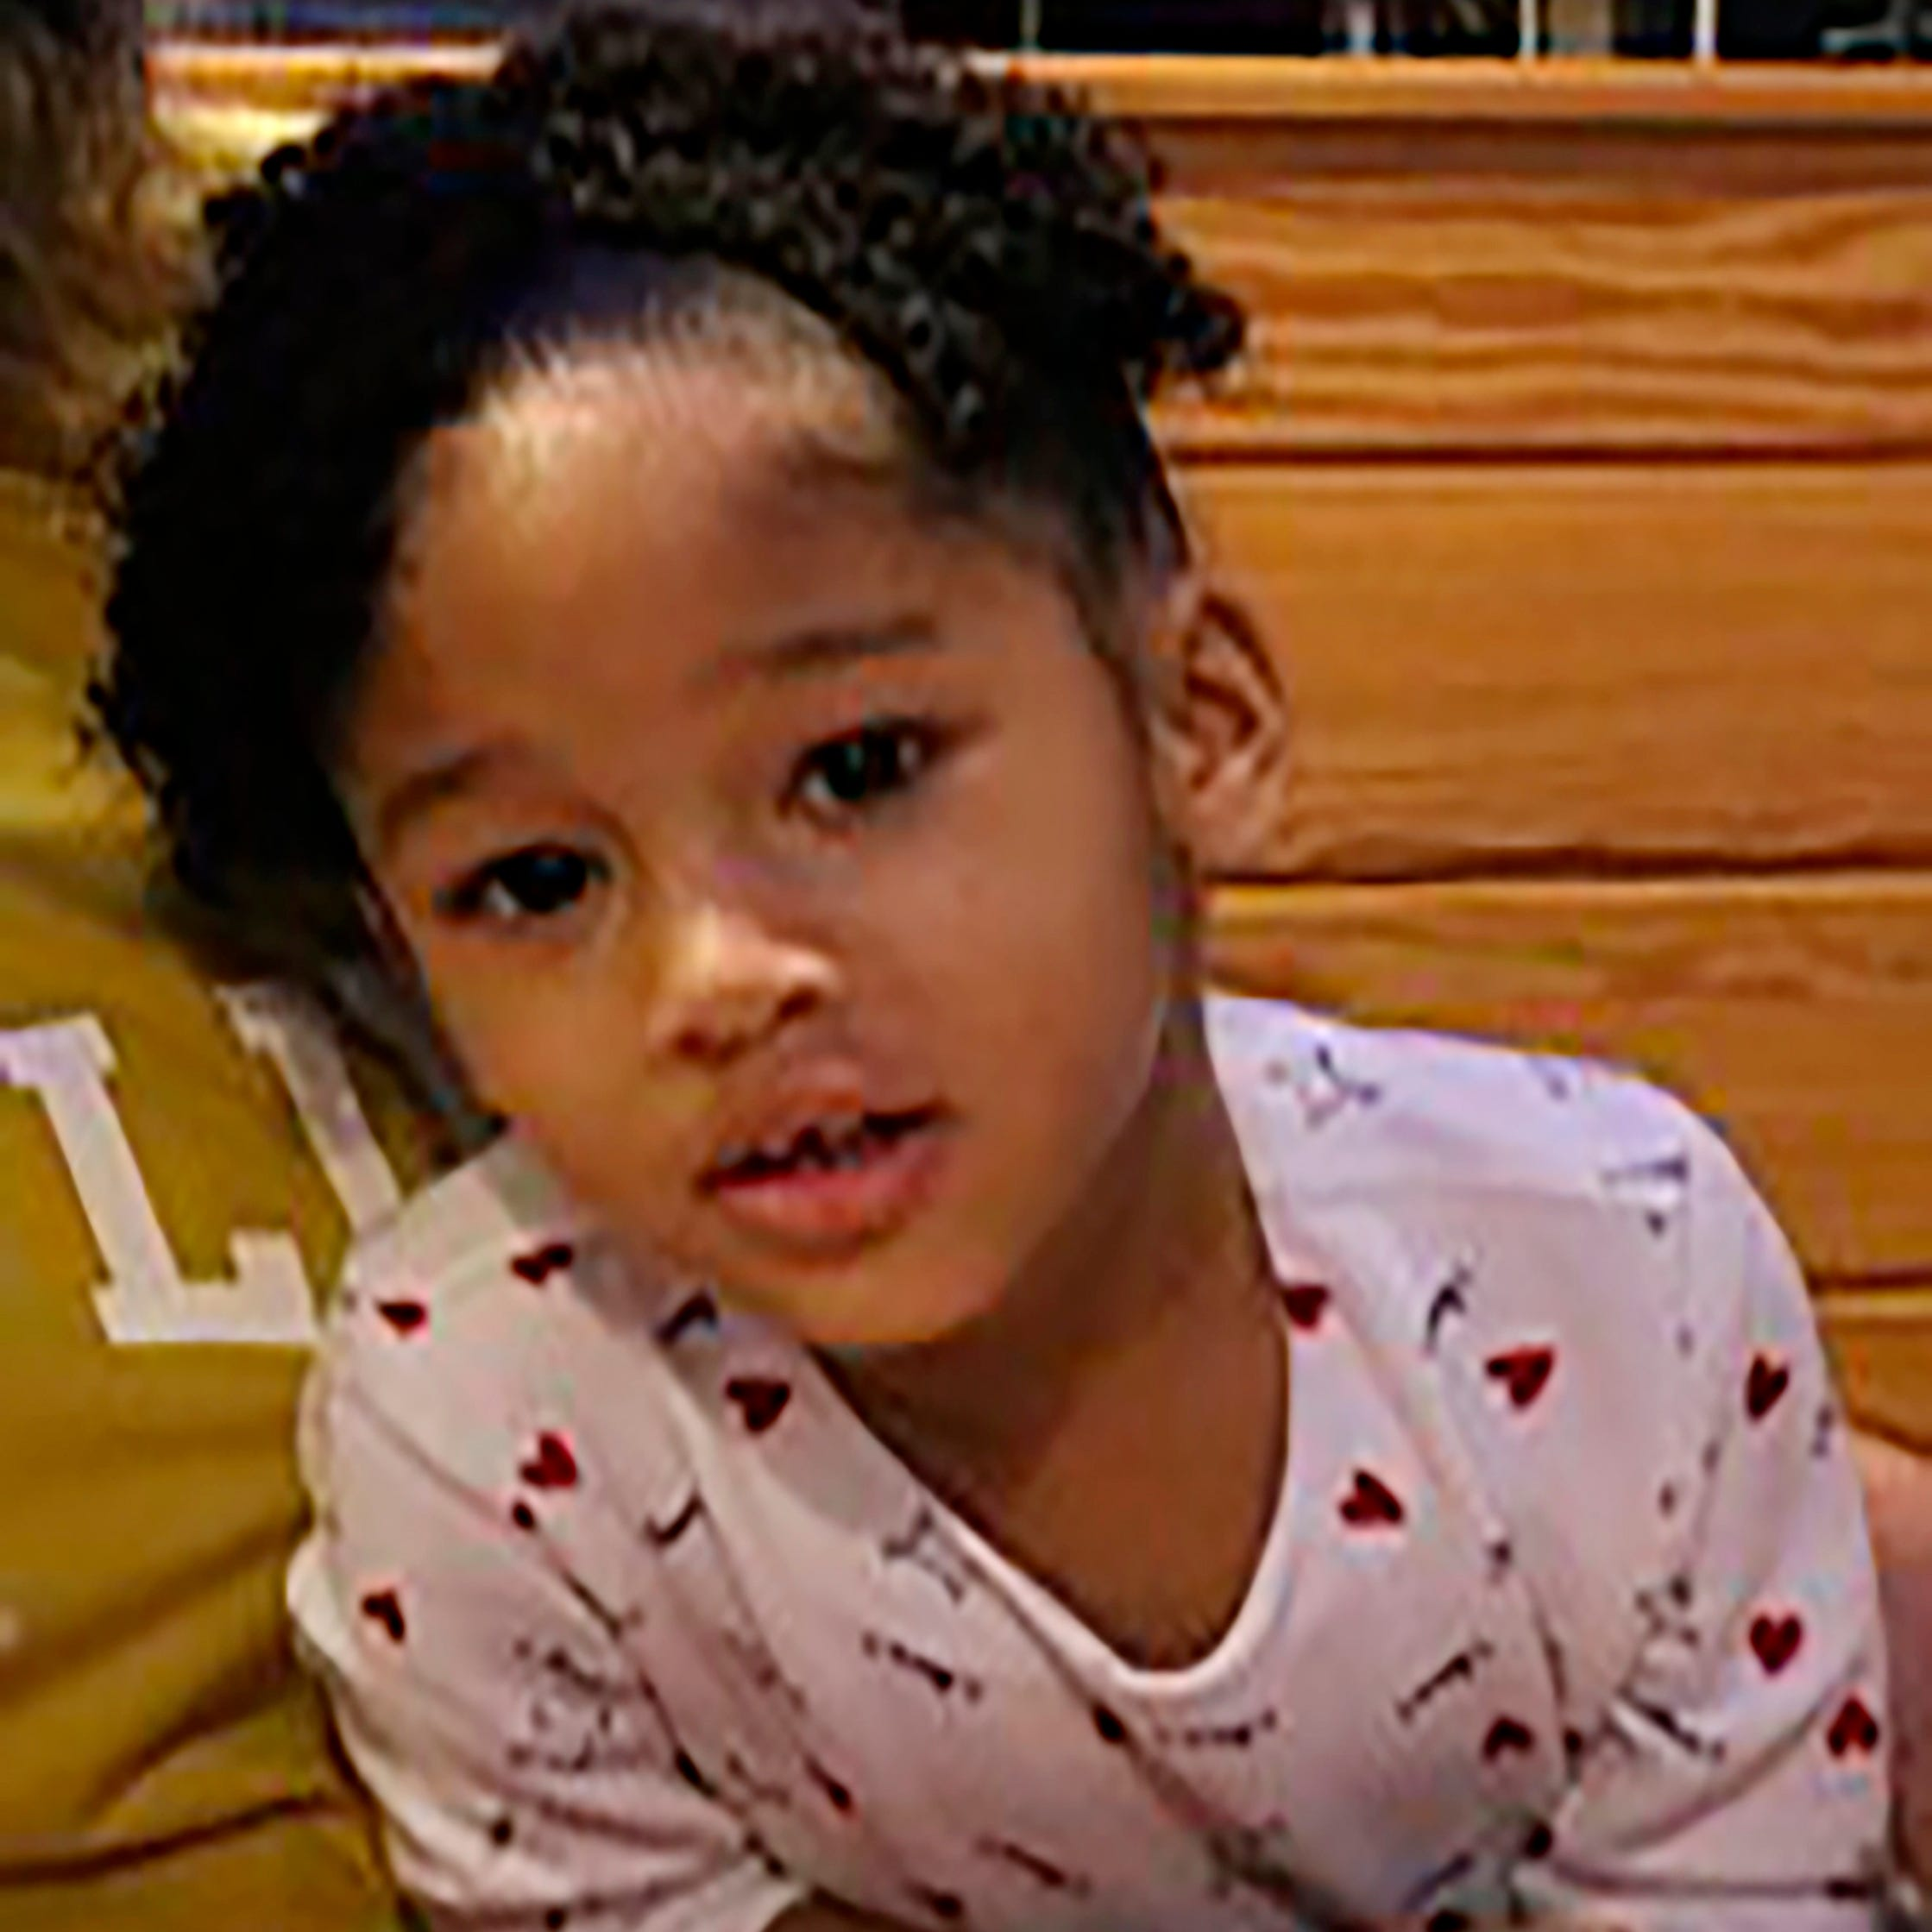 Man who reported 4-year-old Maleah Davis missing arrested in her disappearance